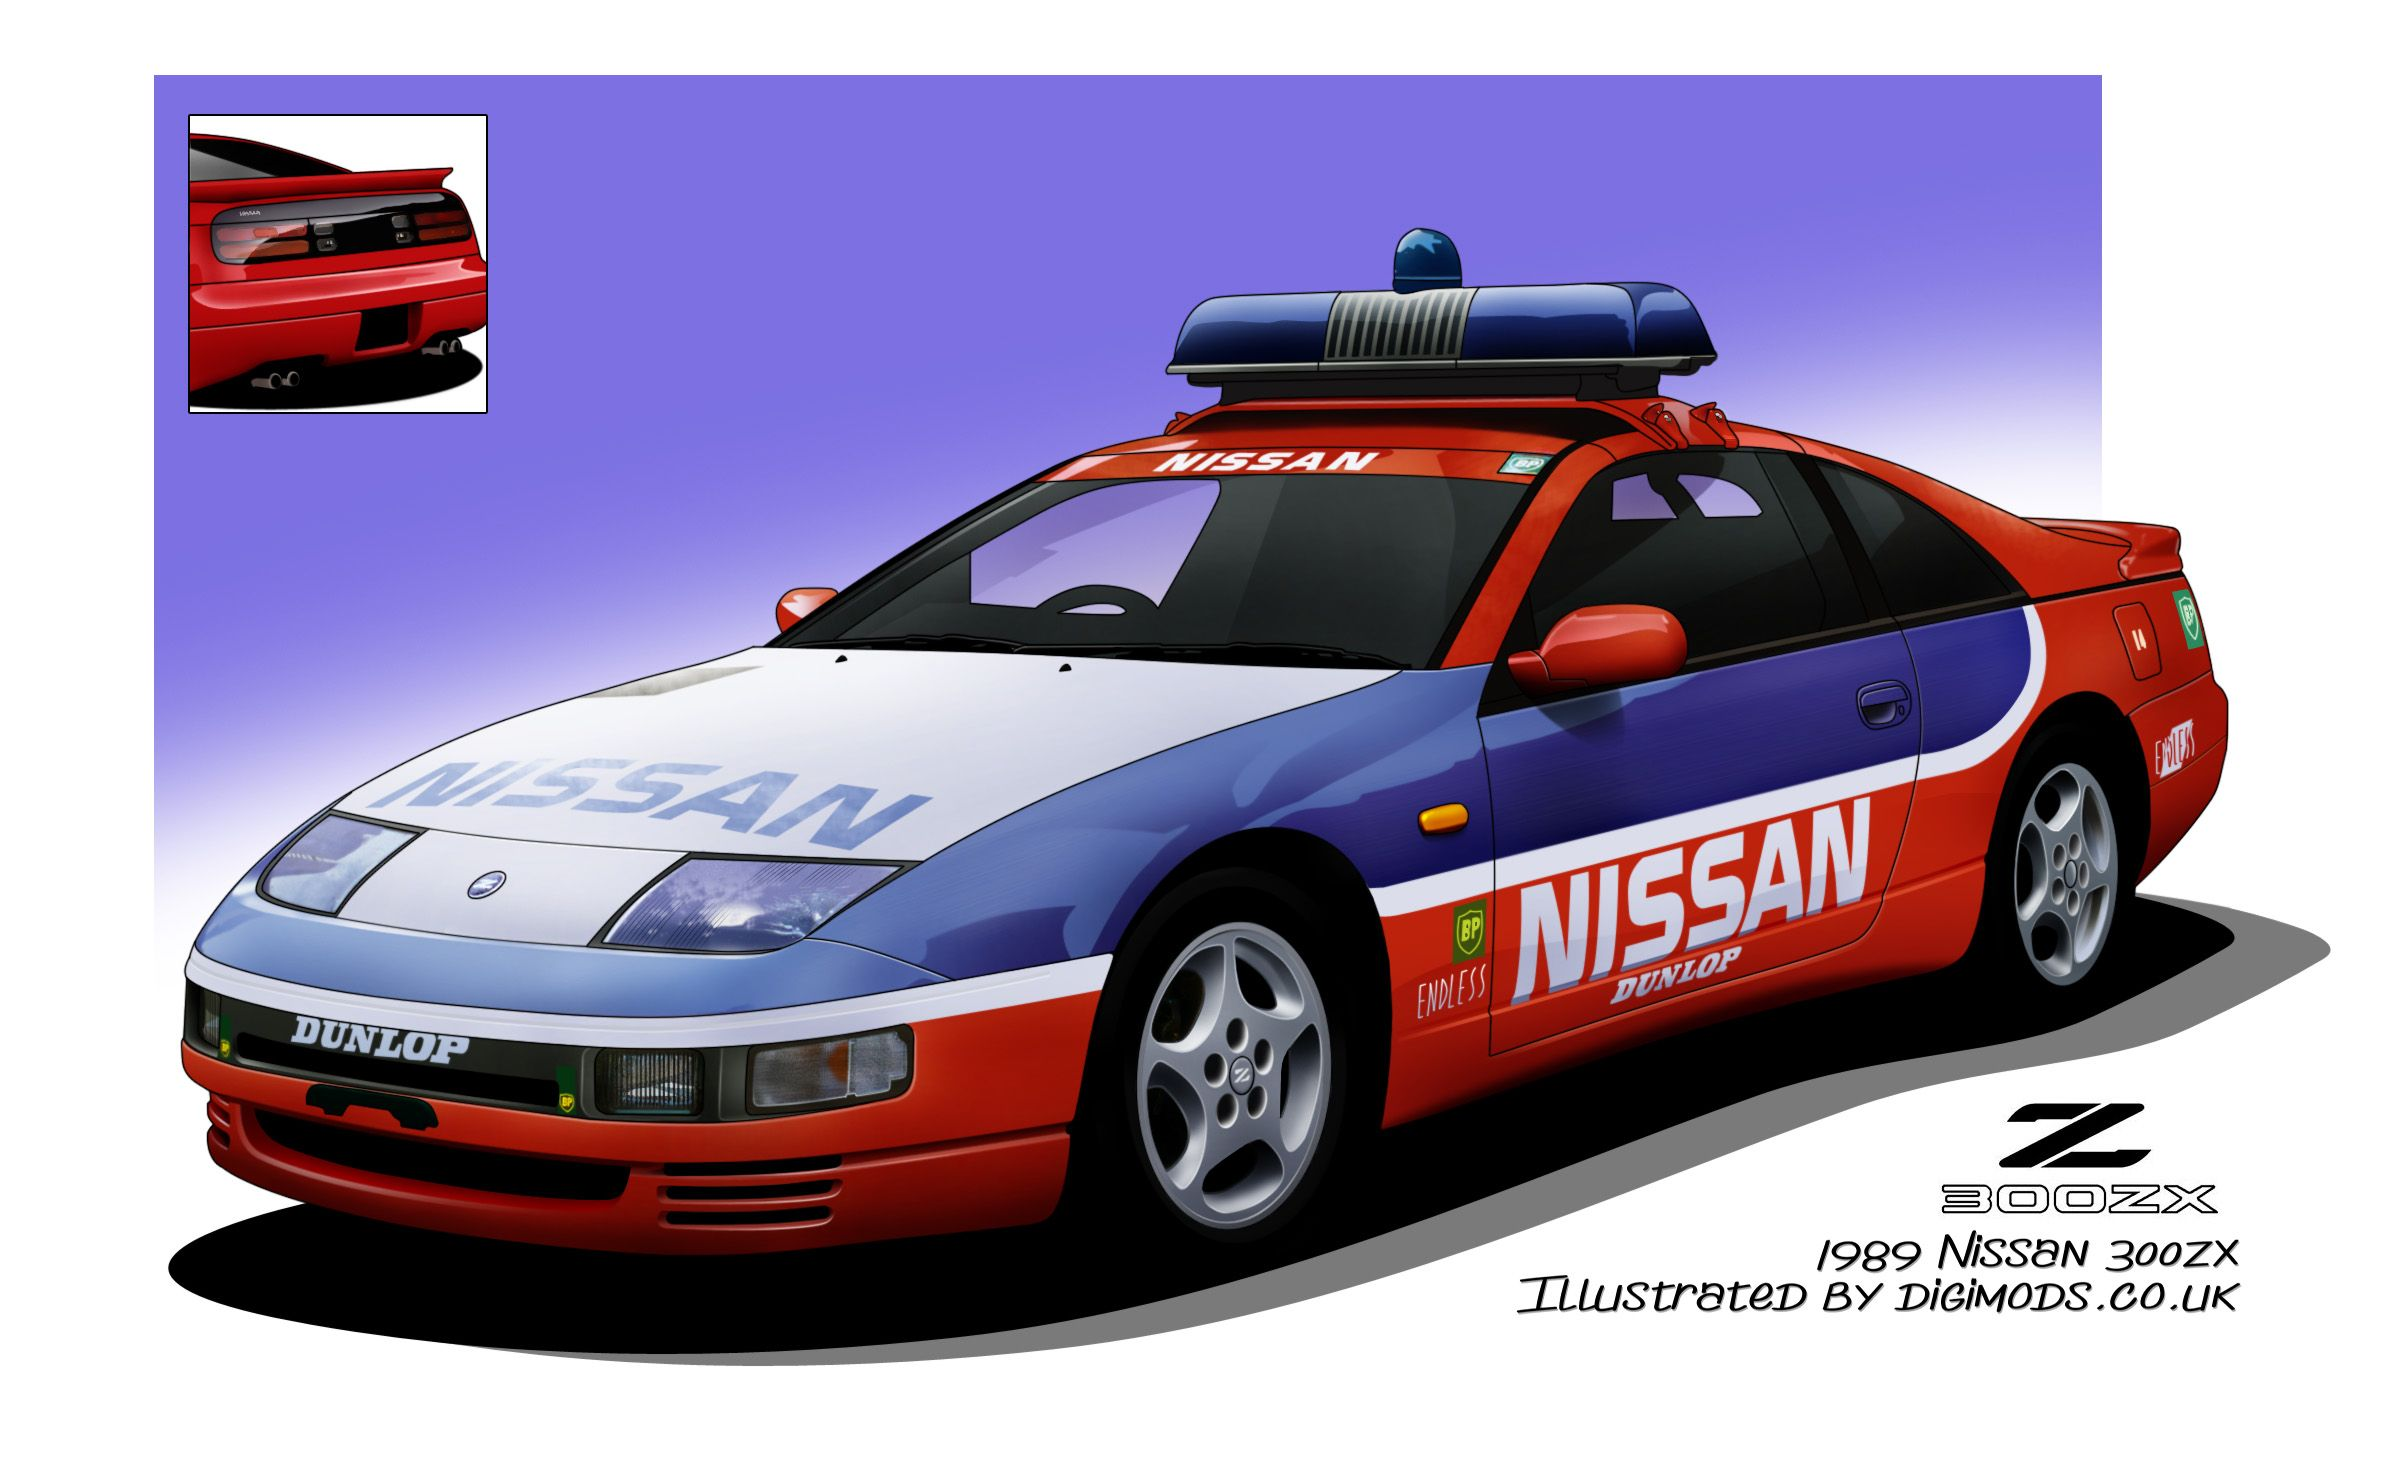 nissan 300zx police car police vehicles modified. Black Bedroom Furniture Sets. Home Design Ideas